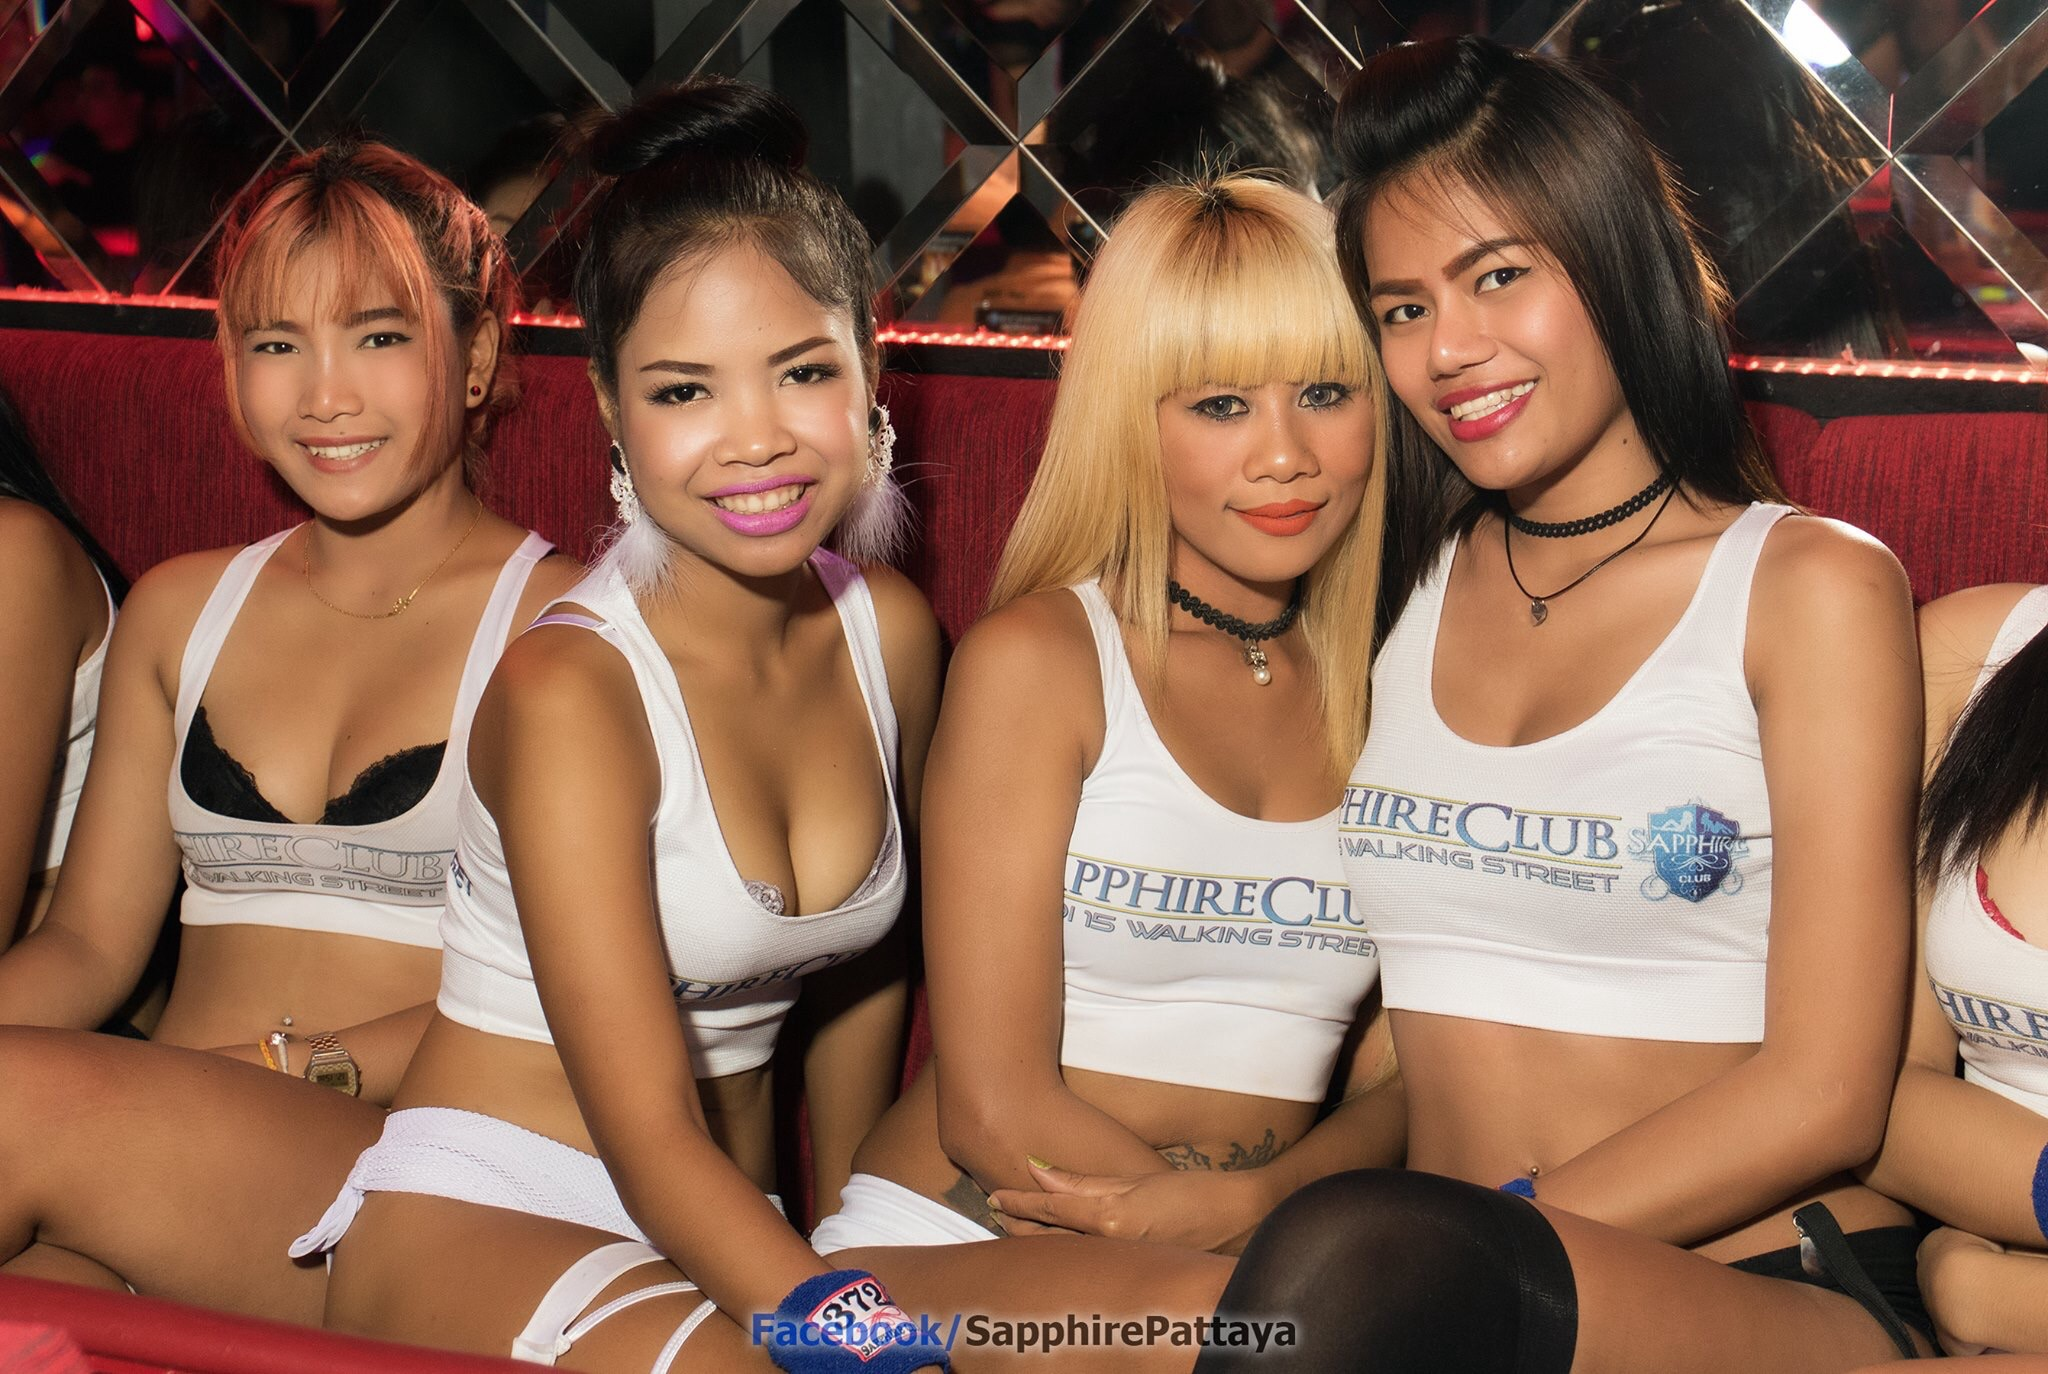 Pattaya bars websites • Pattaya Bars